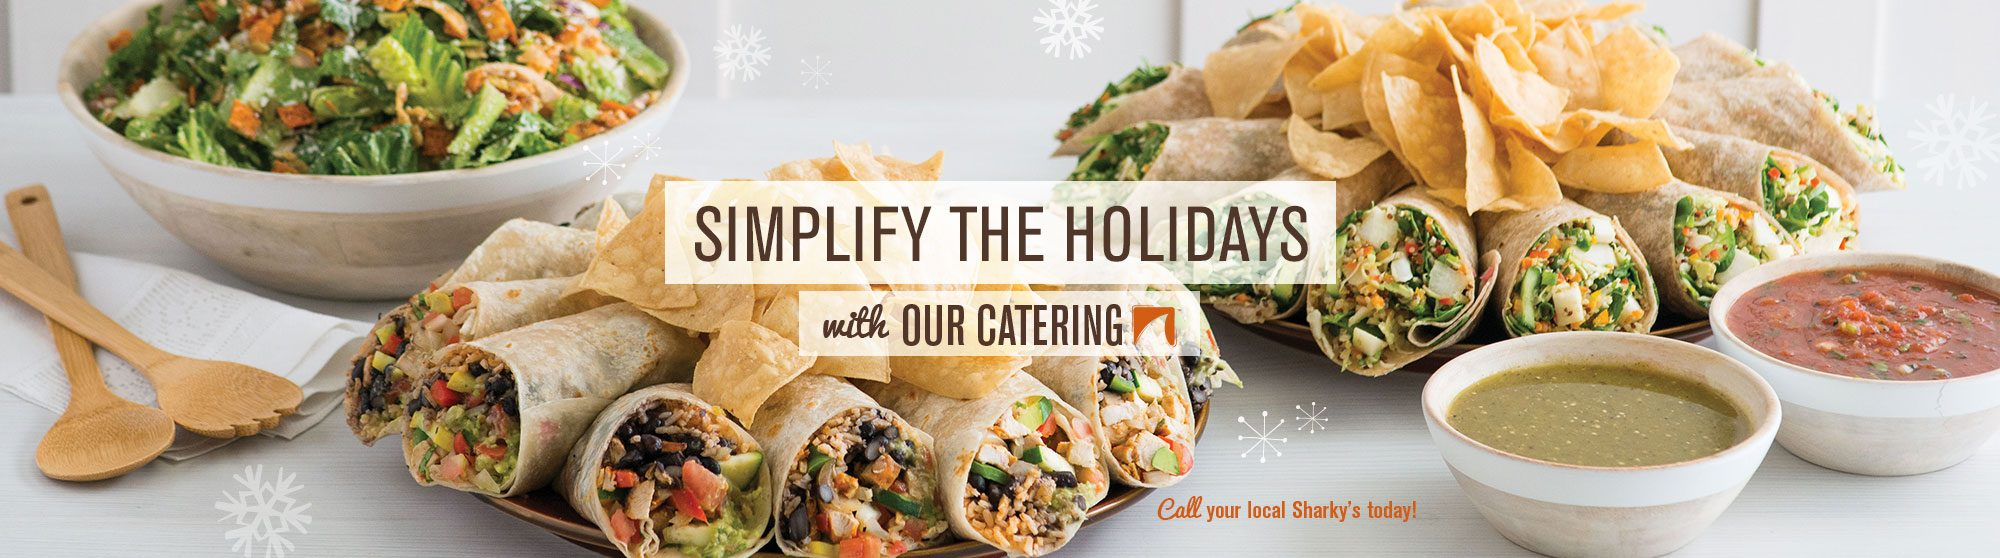 Sharky's catering for the holidays